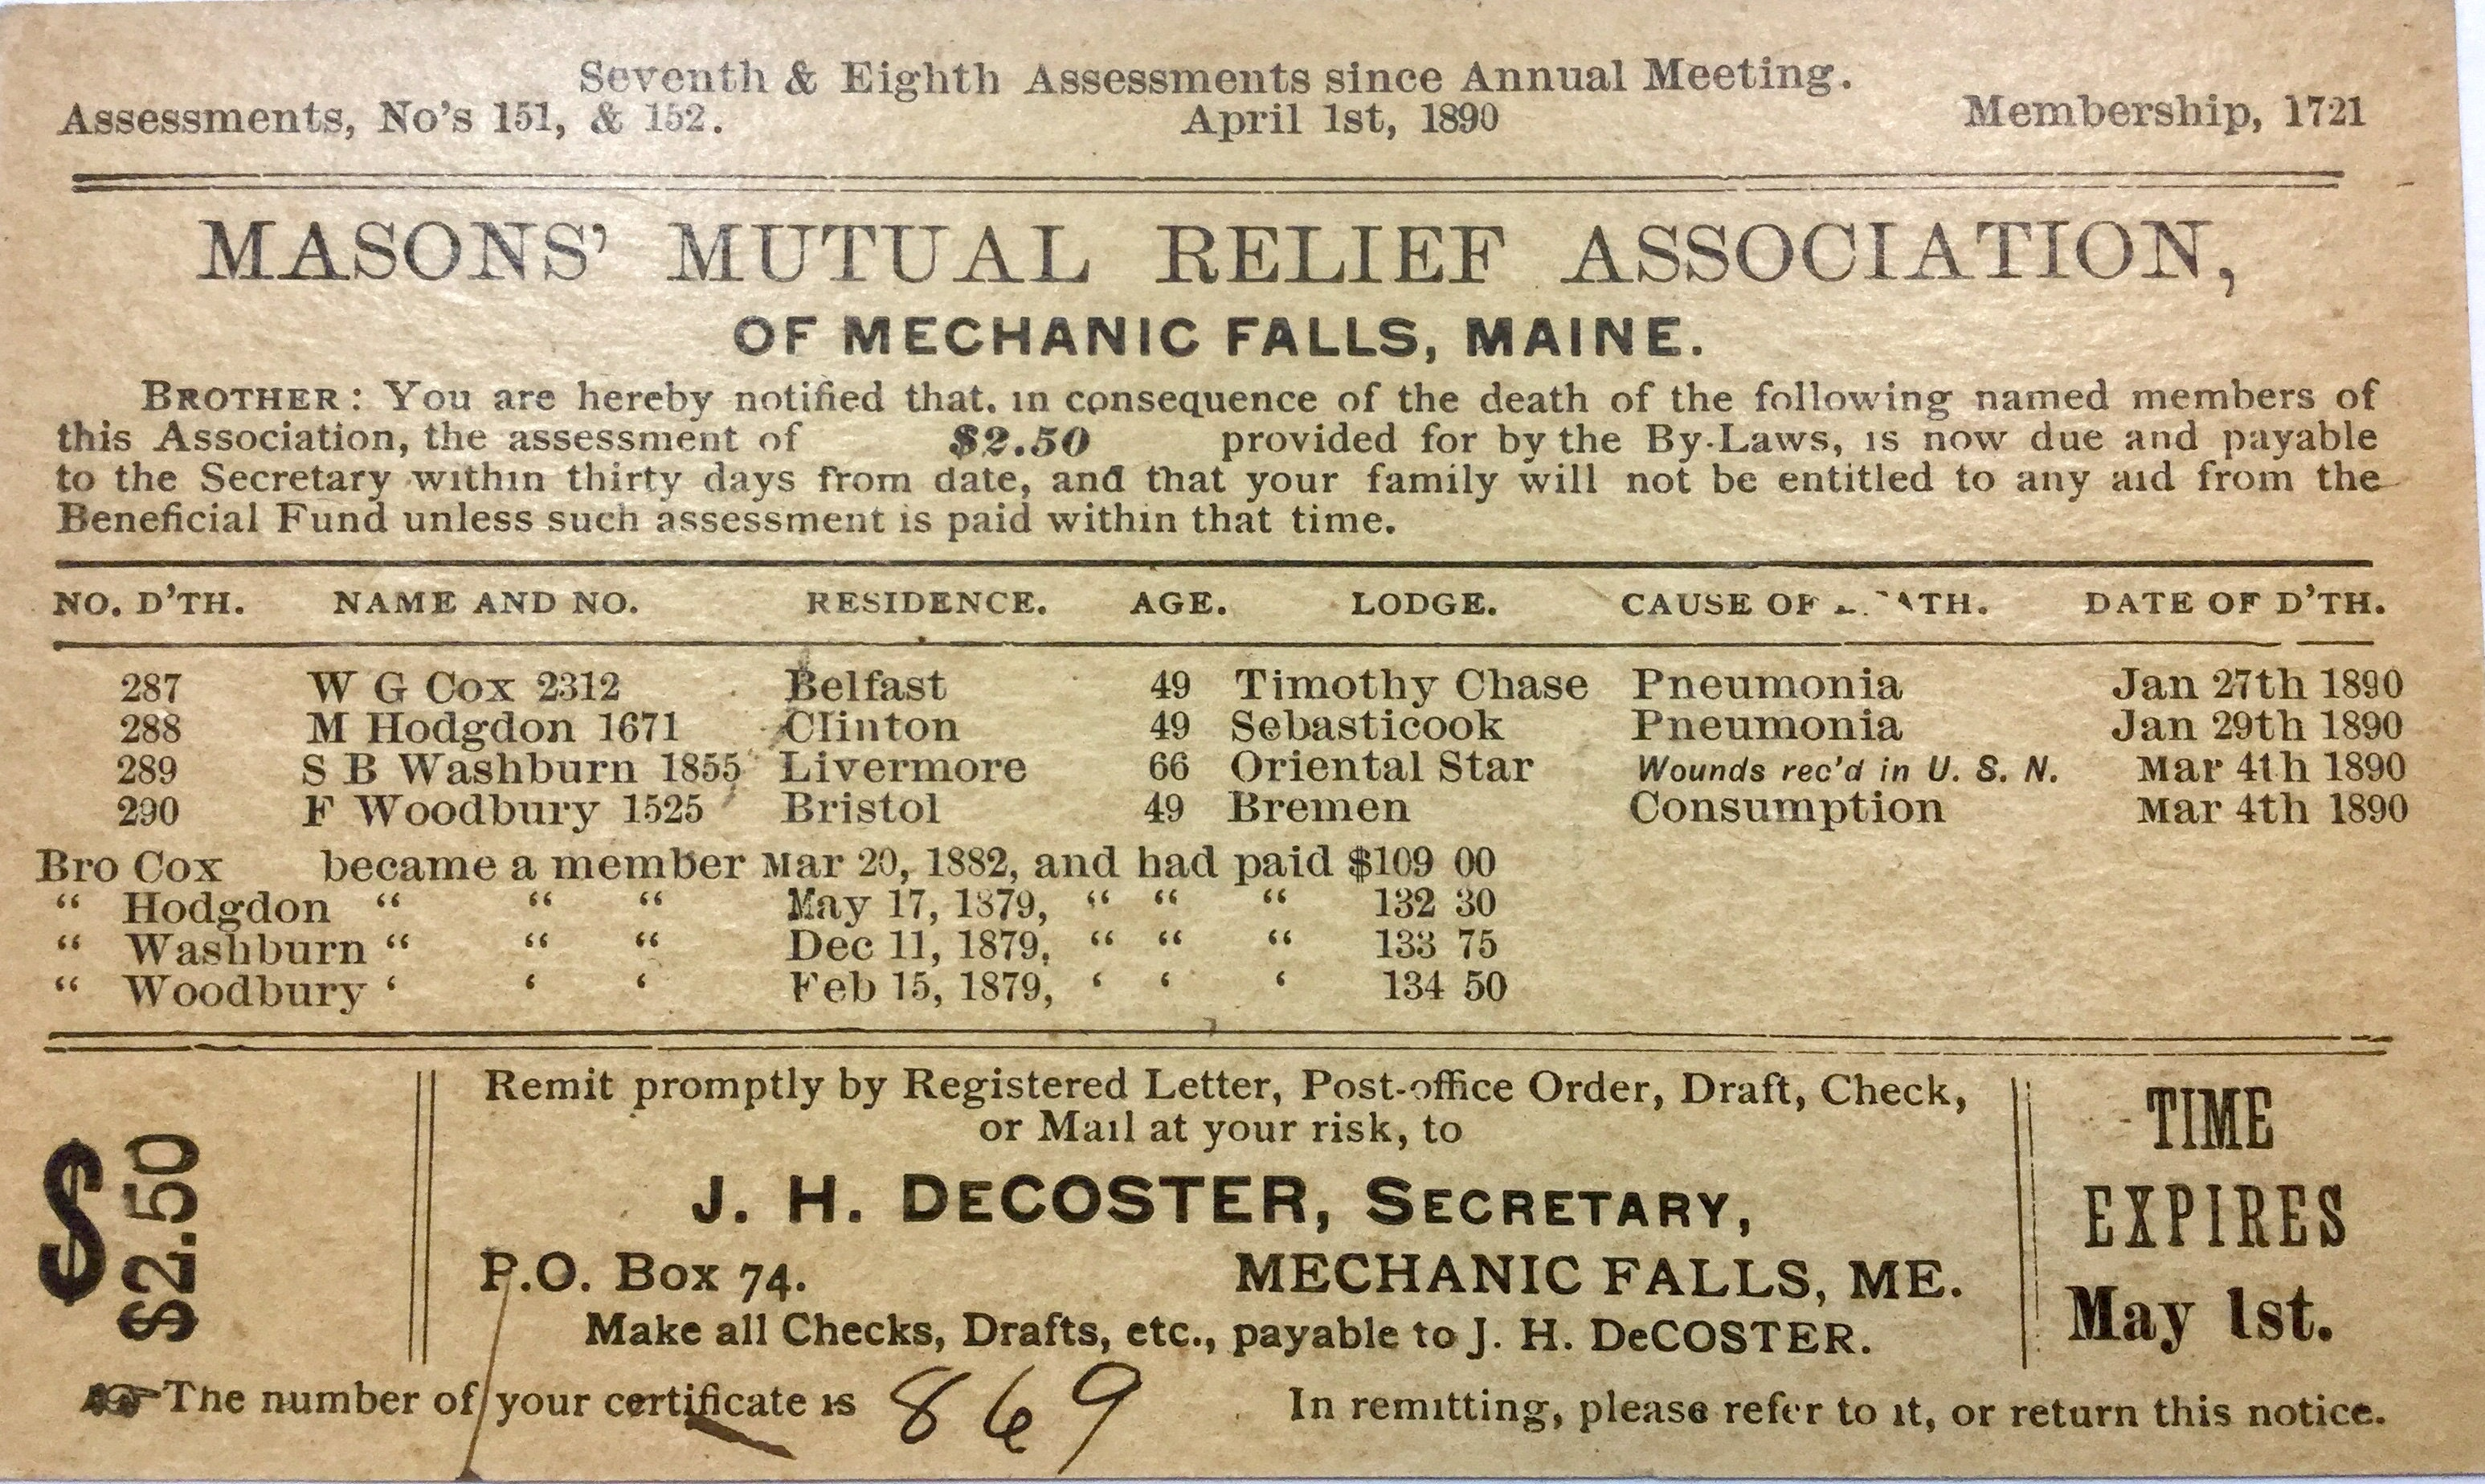 Masons' mutual relief association assessment card